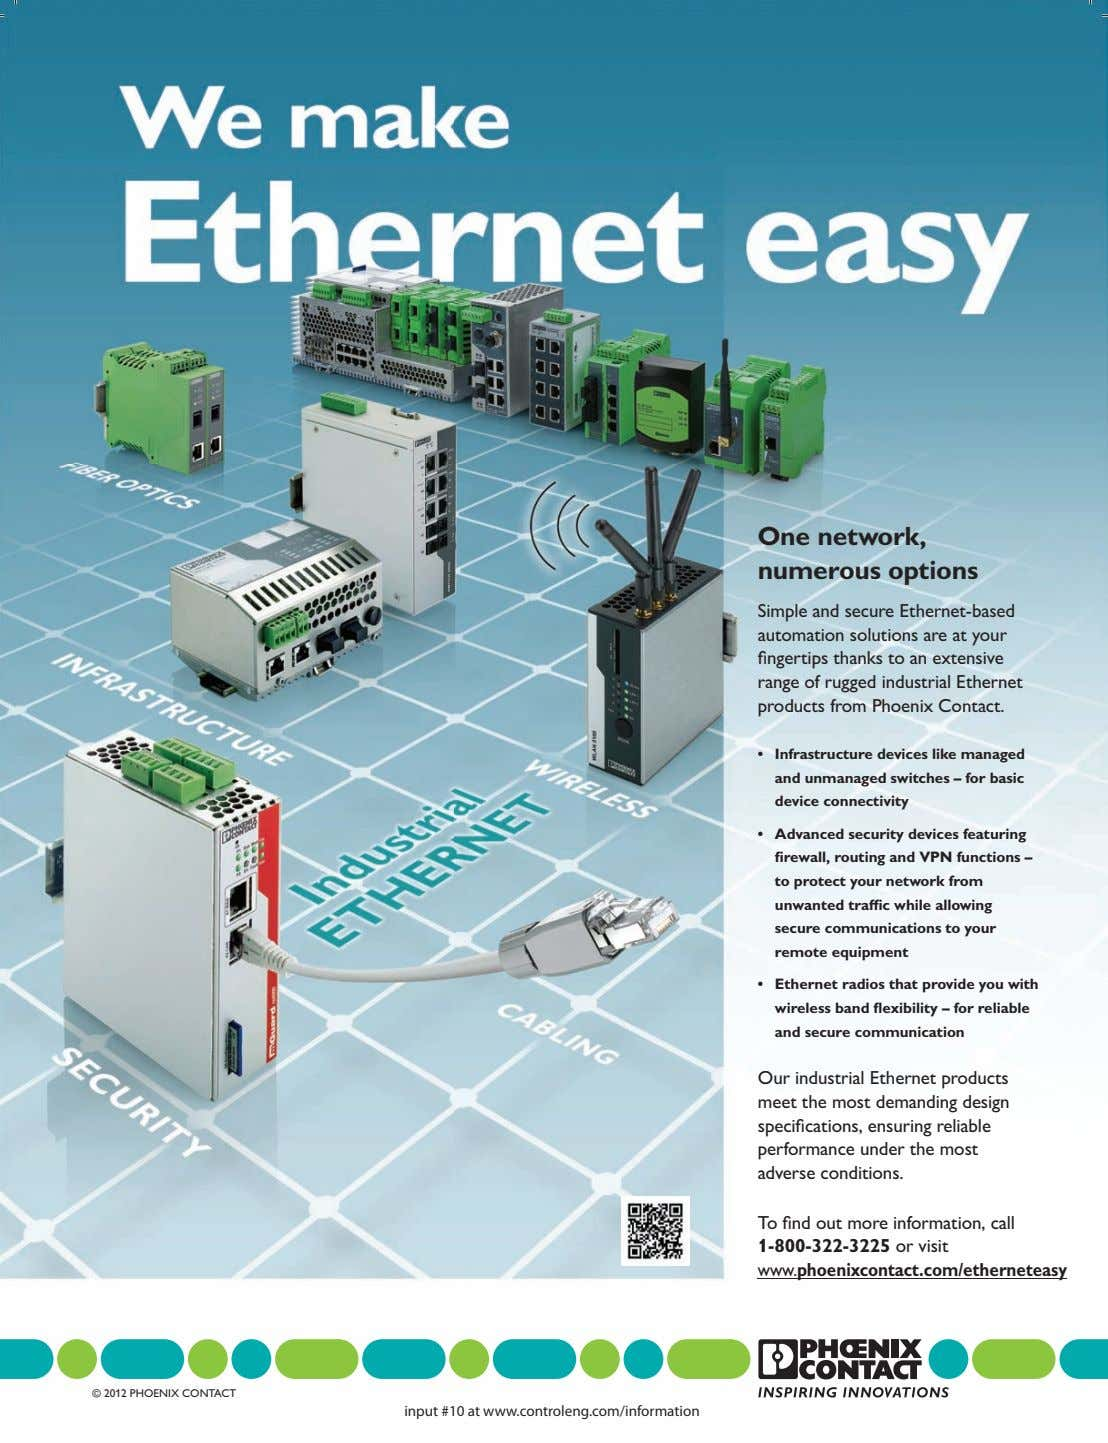 One network, numerous options Simple and secure Ethernet-based automation solutions are at your fingertips thanks